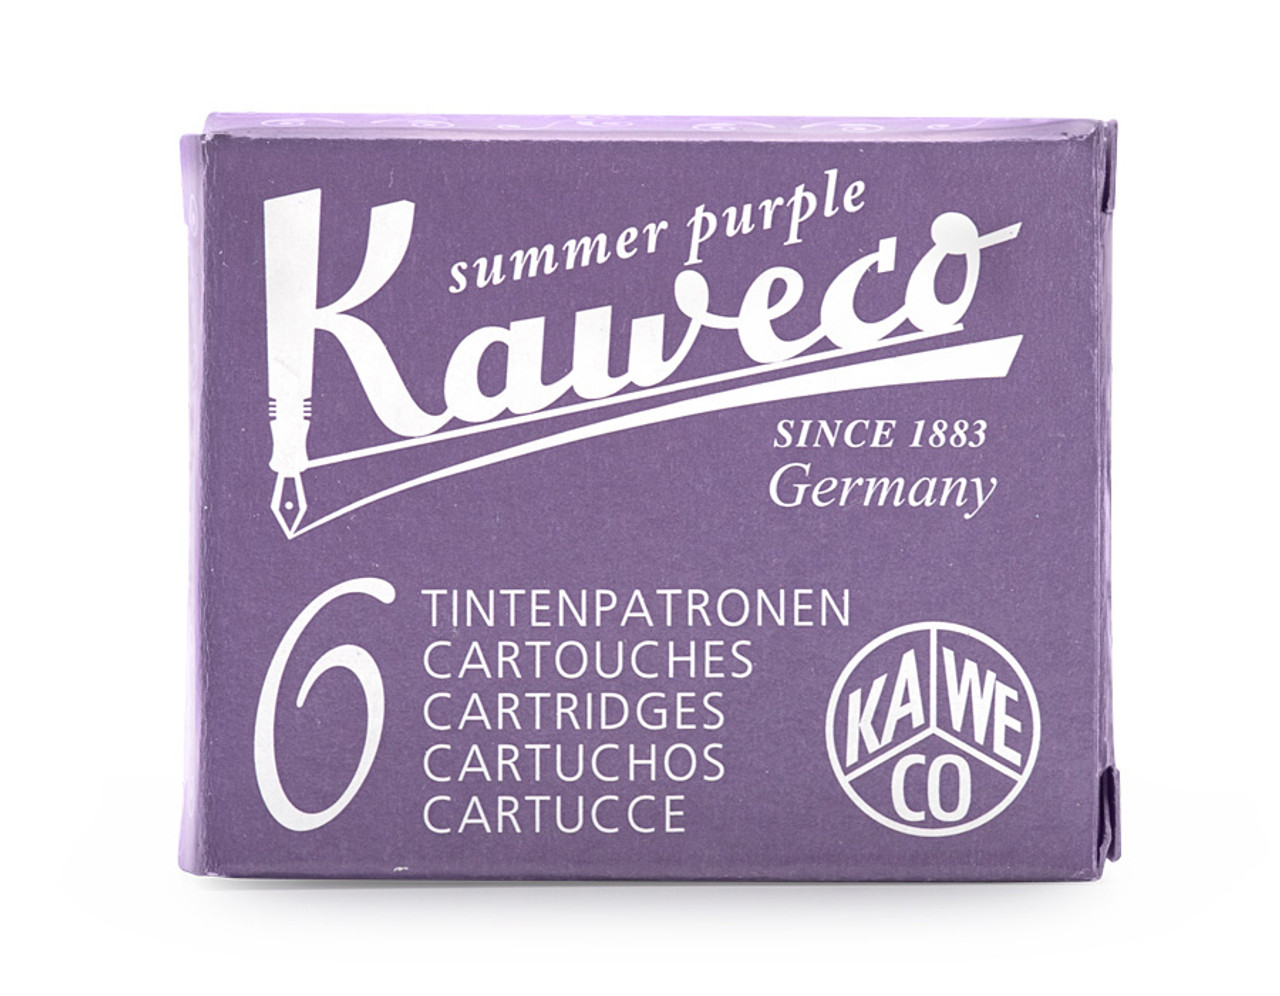 Kaweco ink cartridges, summer purple